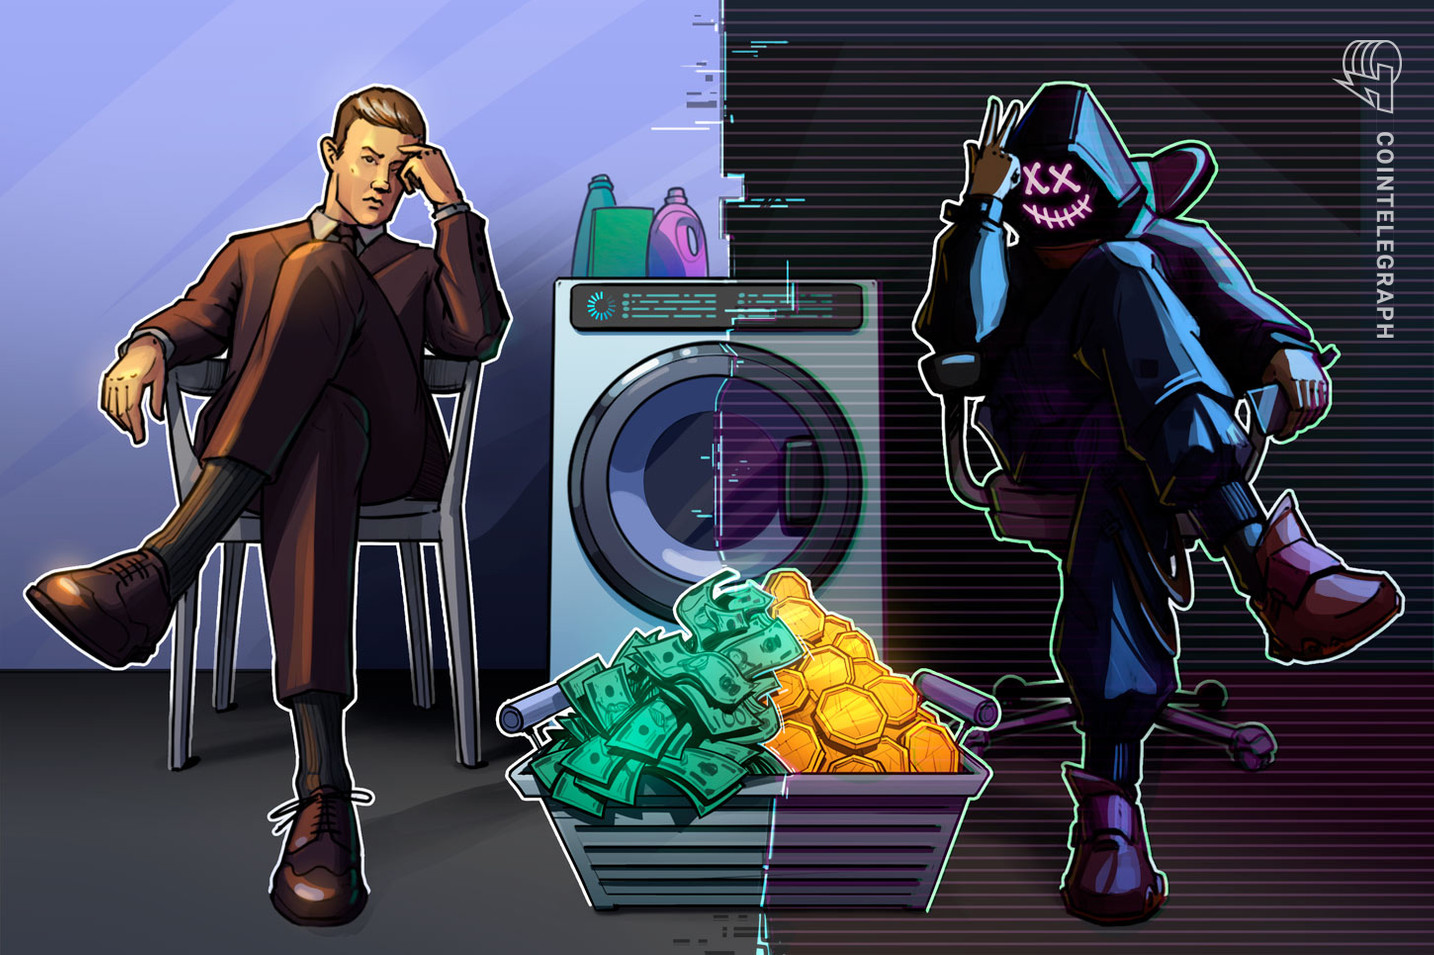 US financial watchdog fines early Bitcoin mixer $60M for money laundering